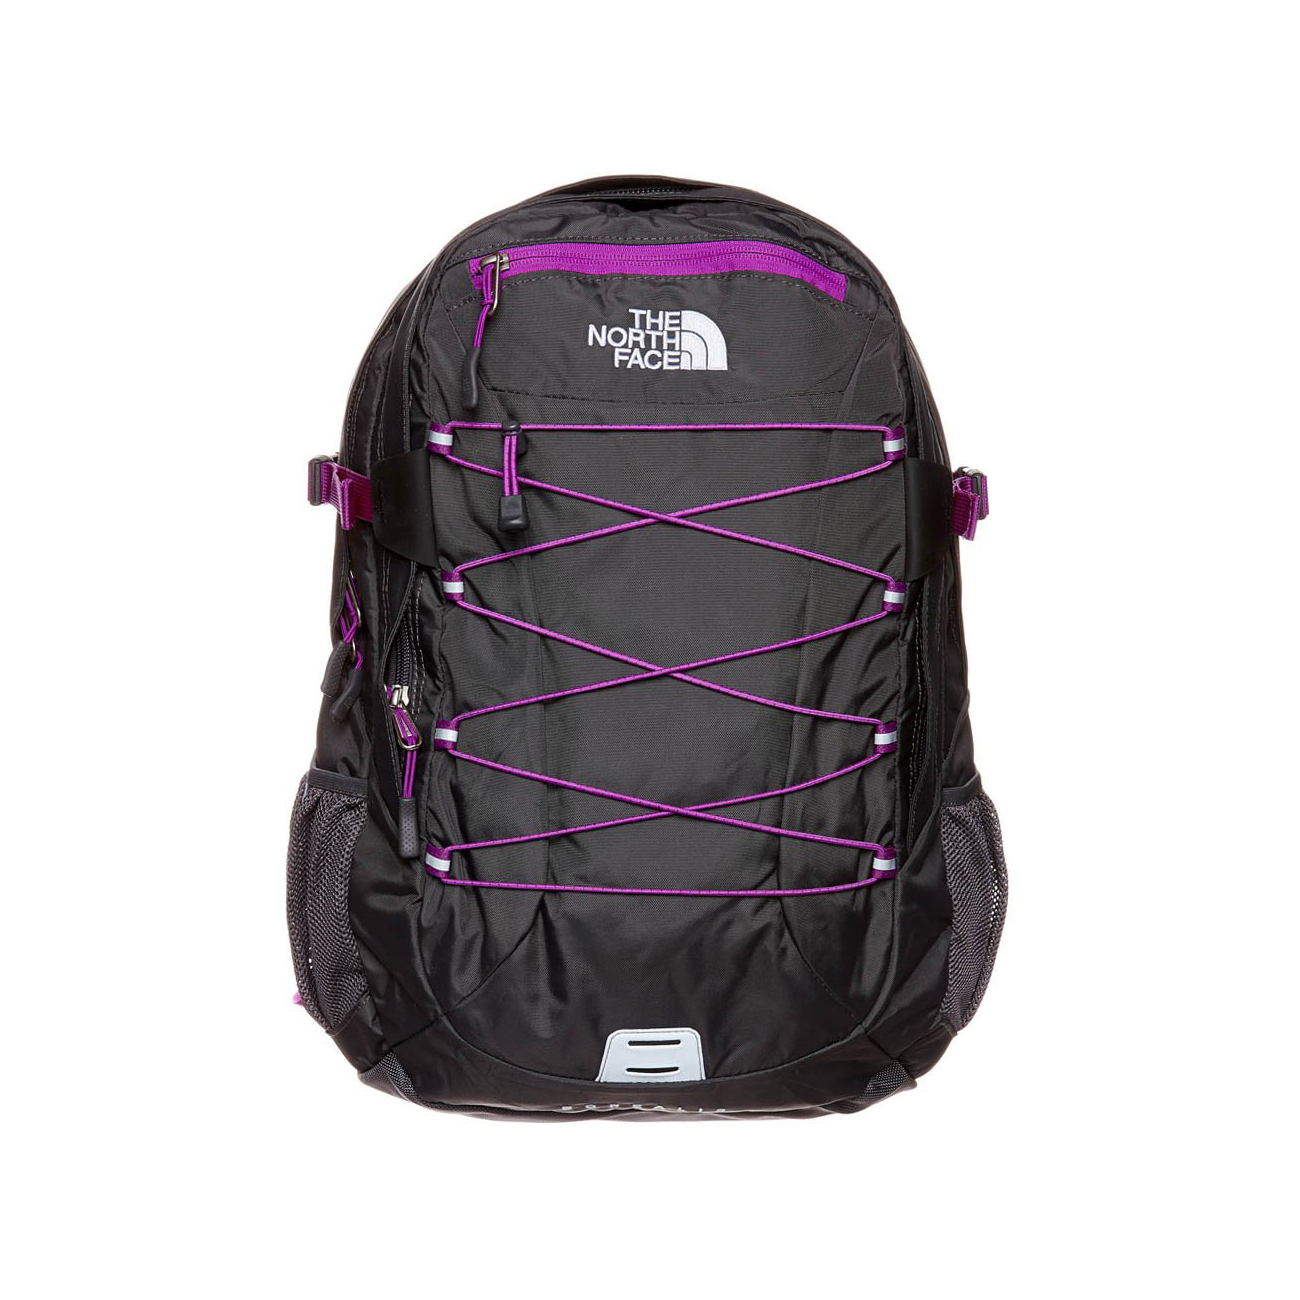 a78ddf70eed81 The North Face - Borealis Purple - Sac à dos - Femme 02